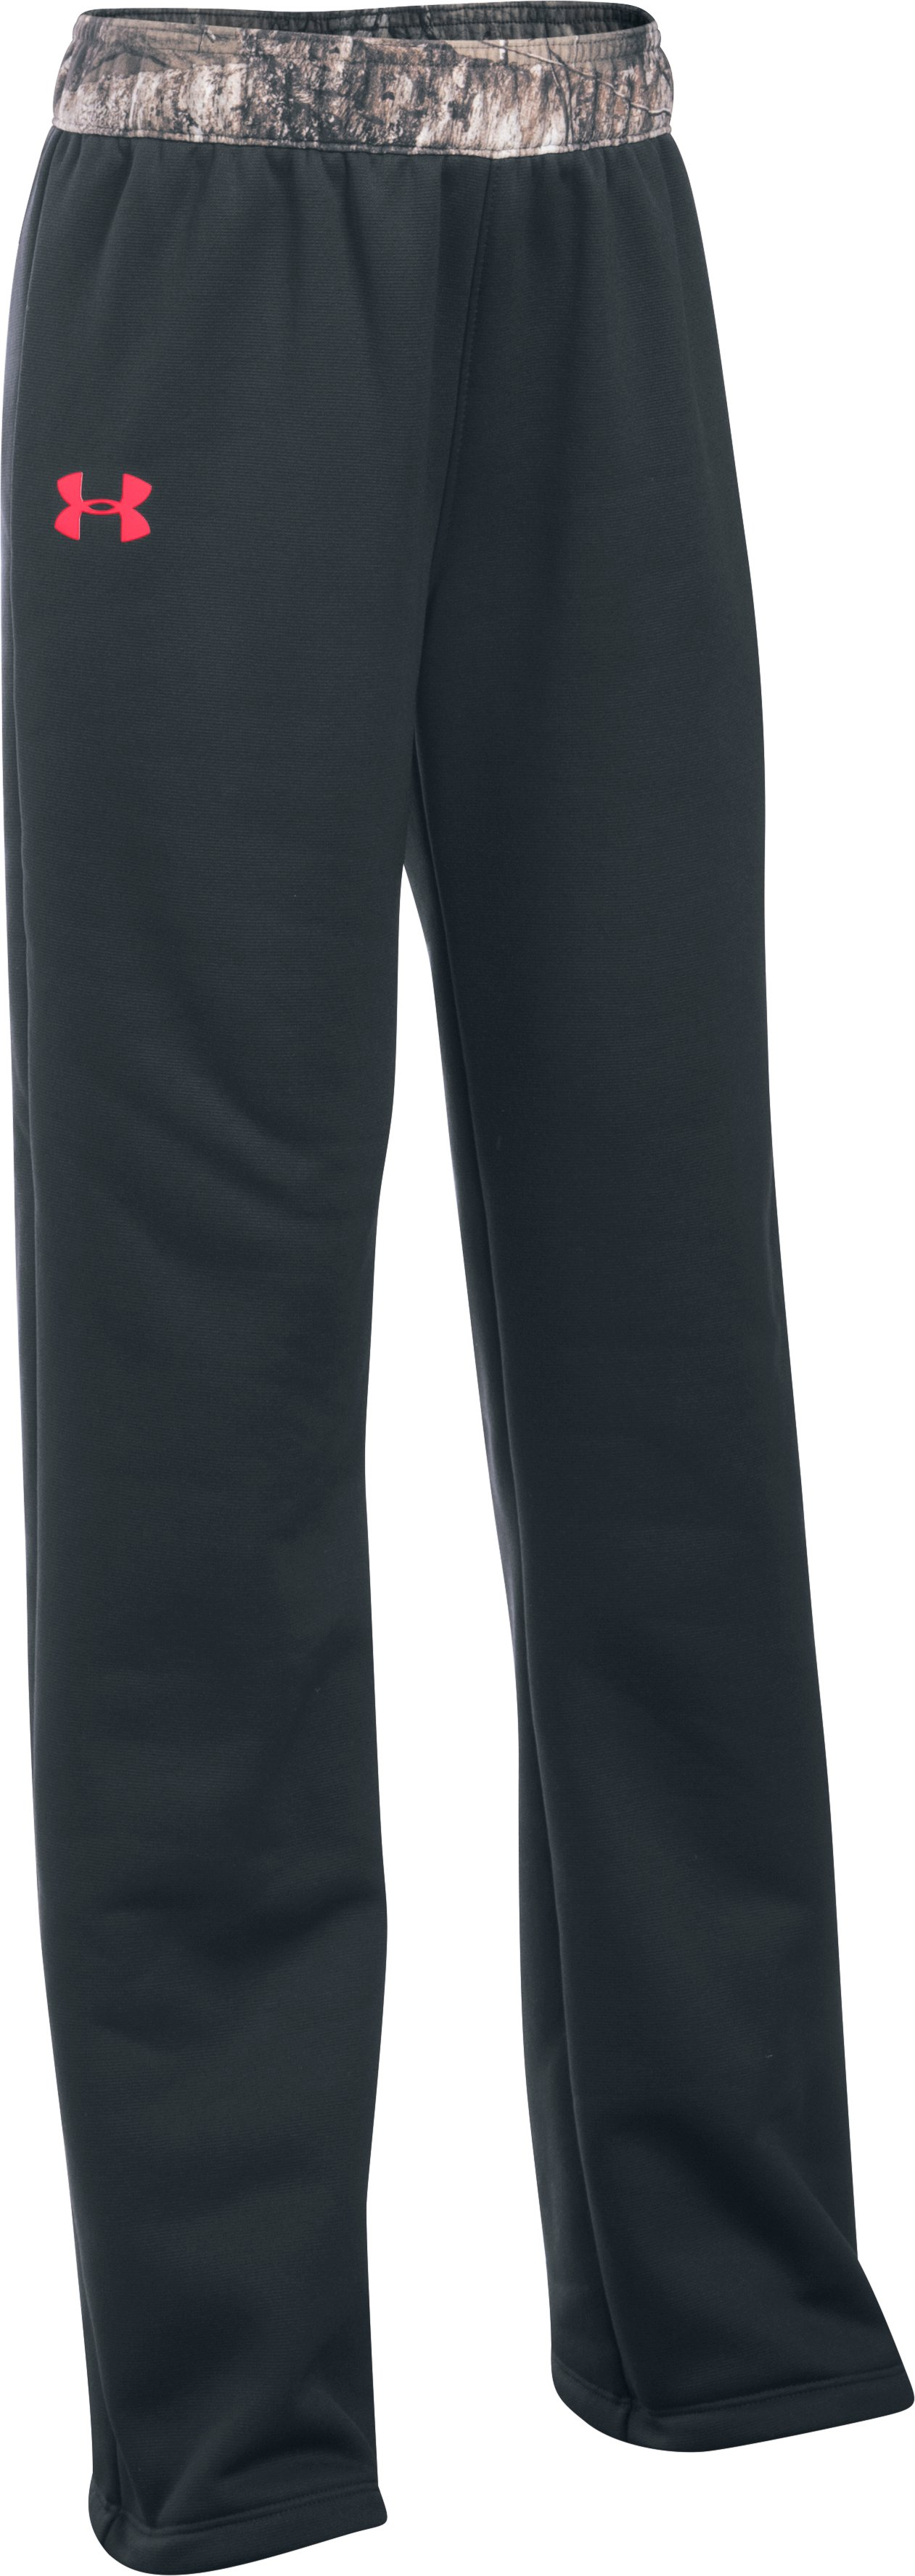 Girls' UA Storm Caliber Pants, ANTHRACITE, zoomed image